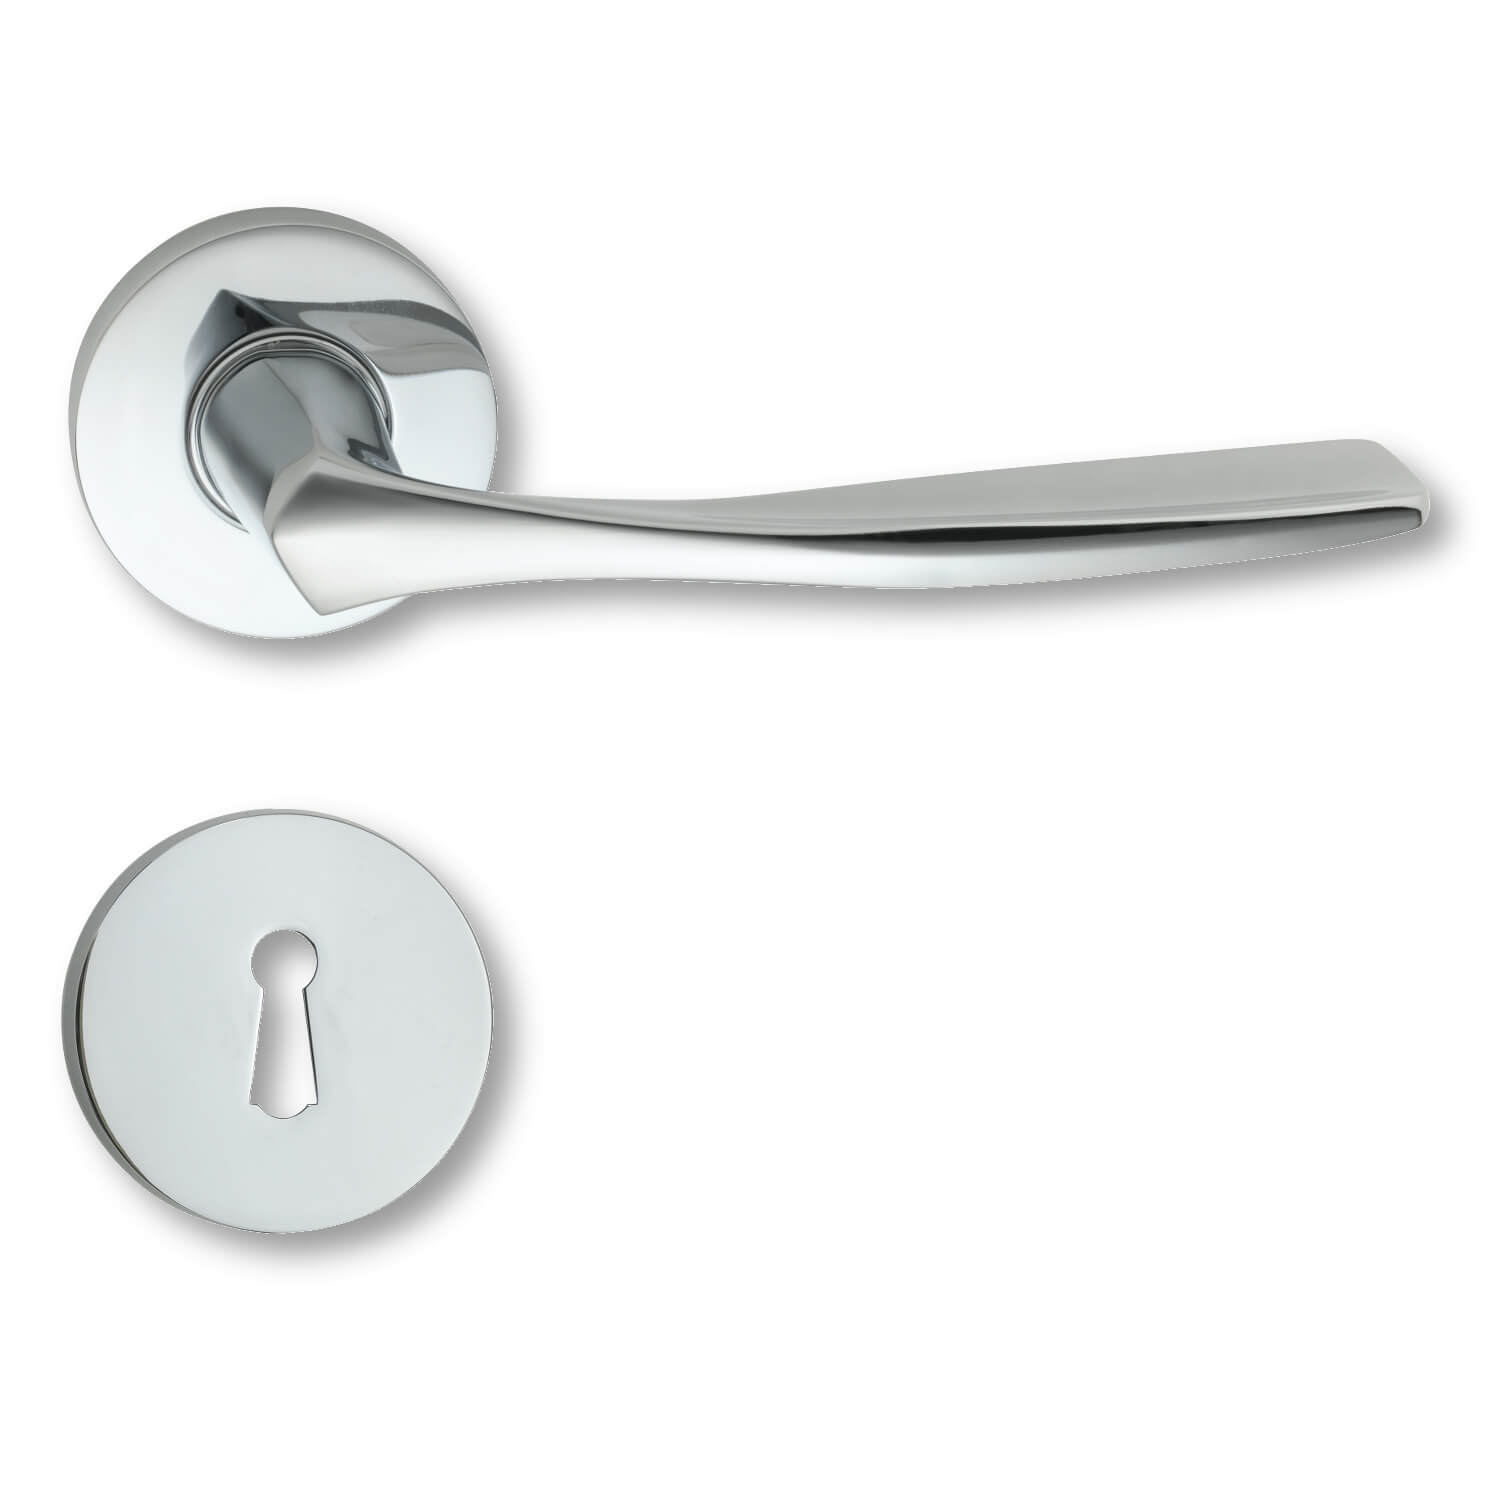 Door handle interior blank chrome rosette and escutcheon for 1950 door handles